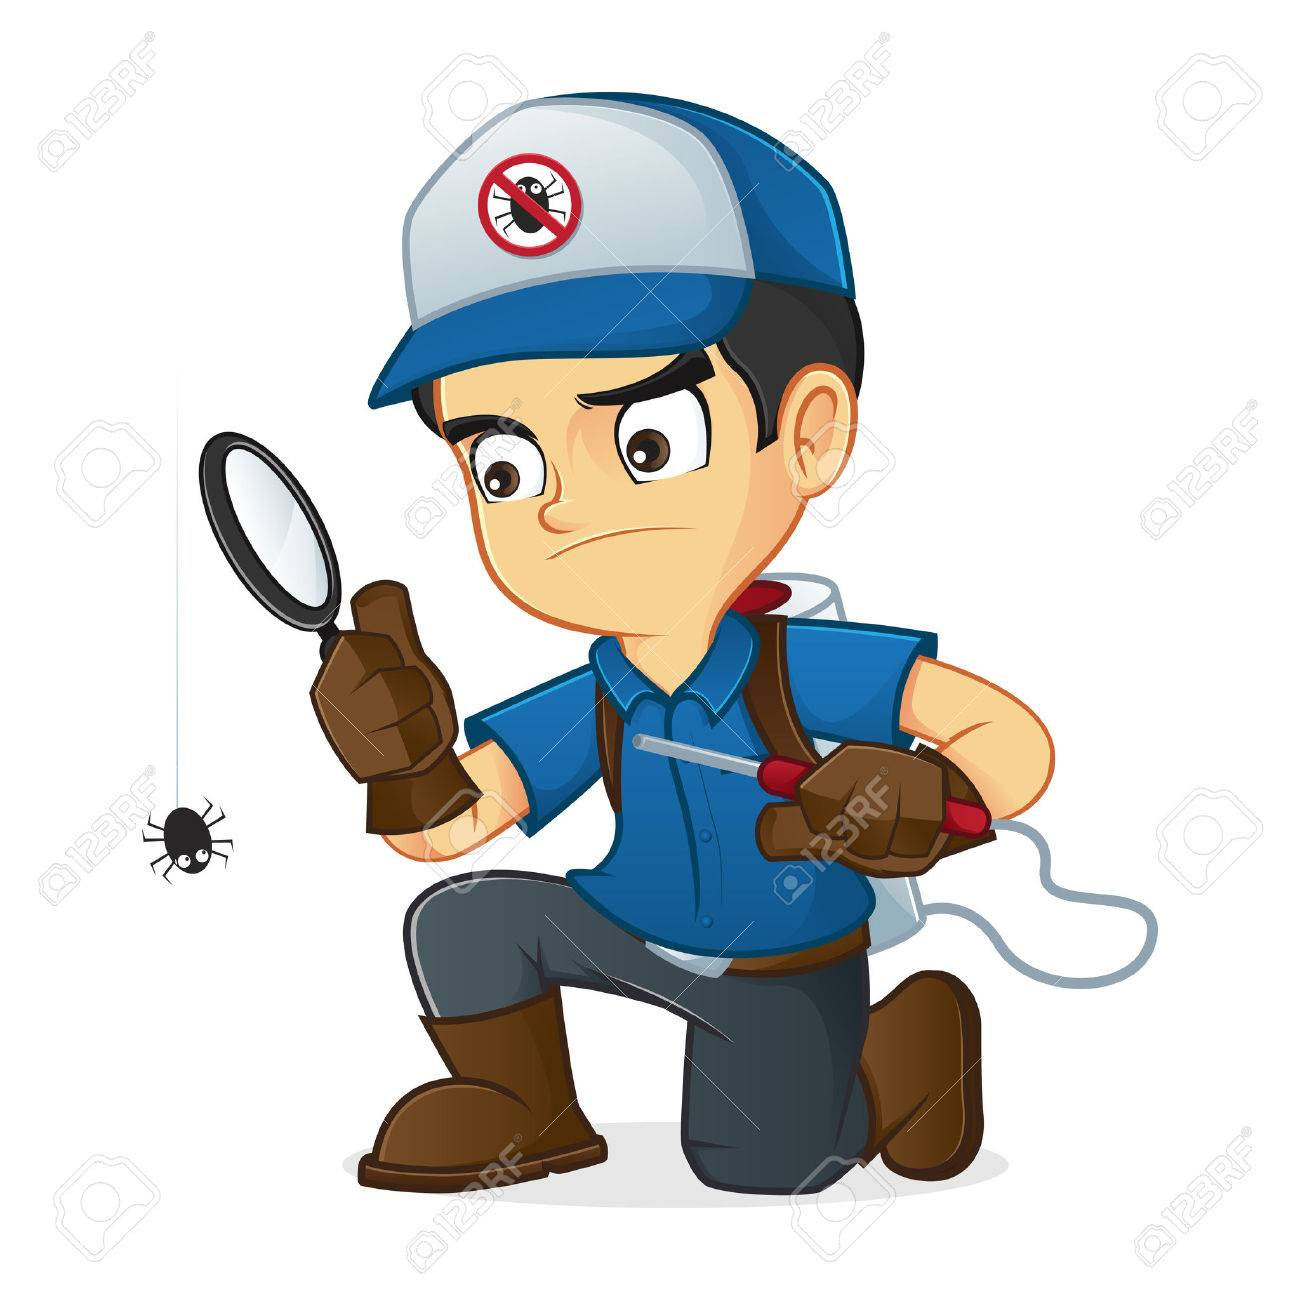 Exterminator searching for bugs and kill them - 50264282